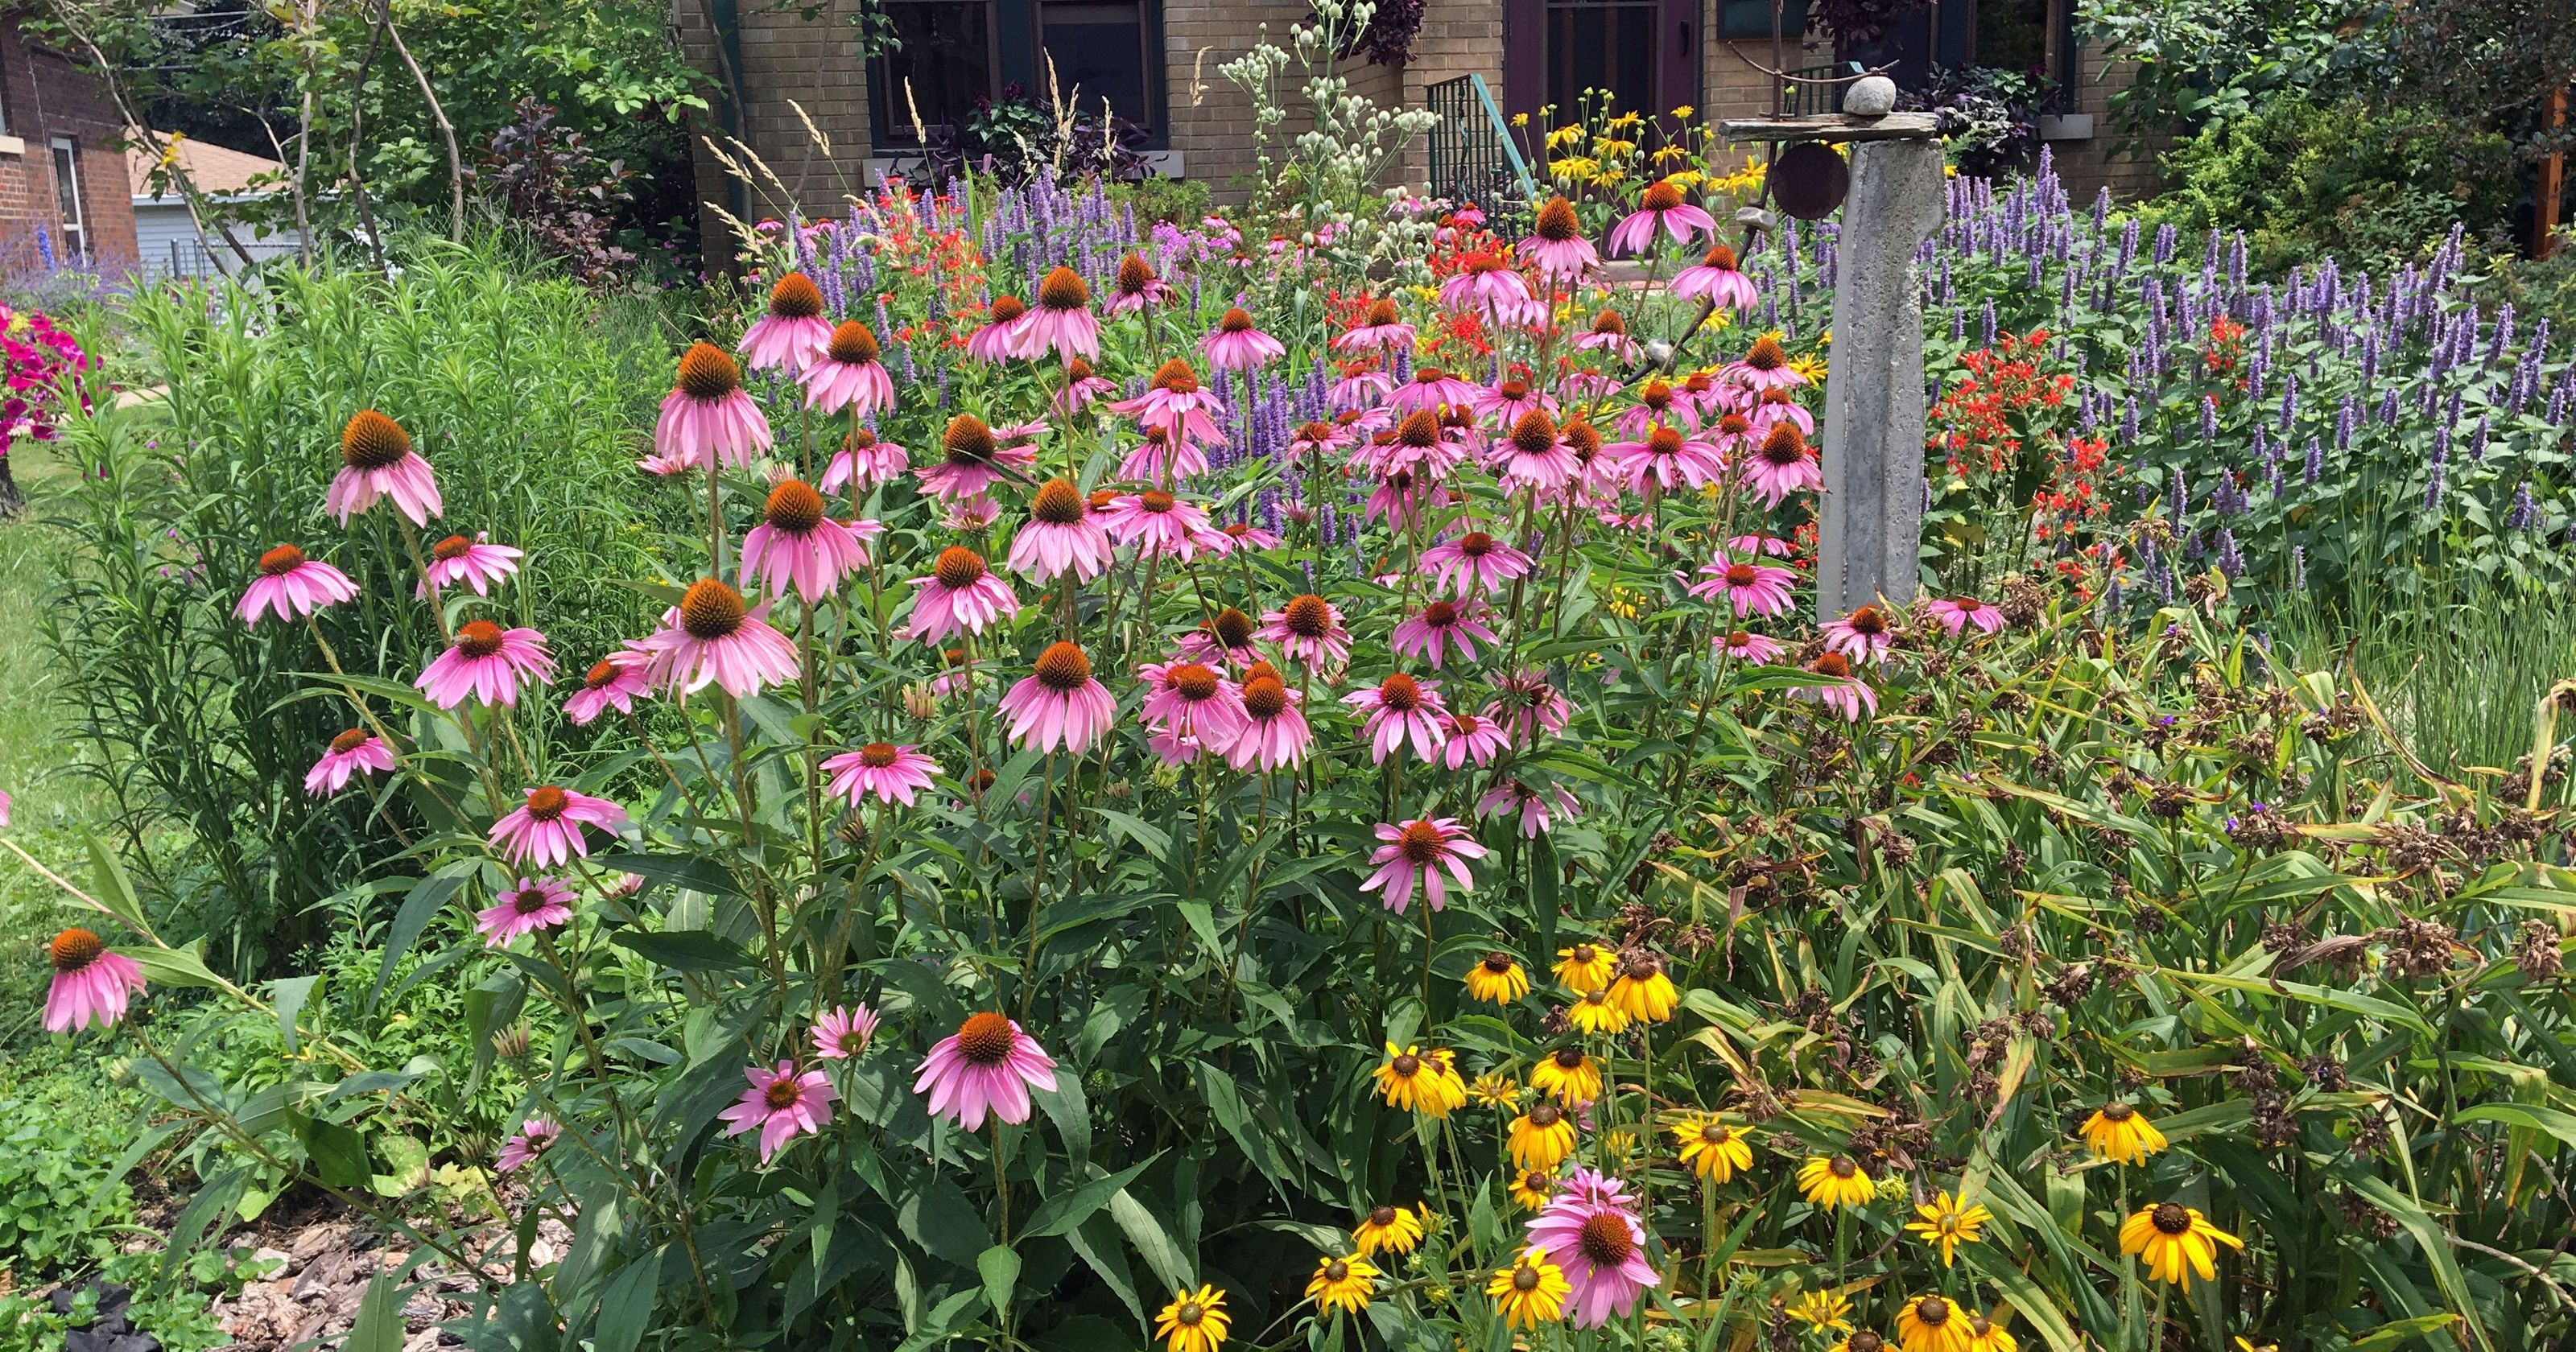 Planting For Pollinators A Tale Of Two Gardens By Susan